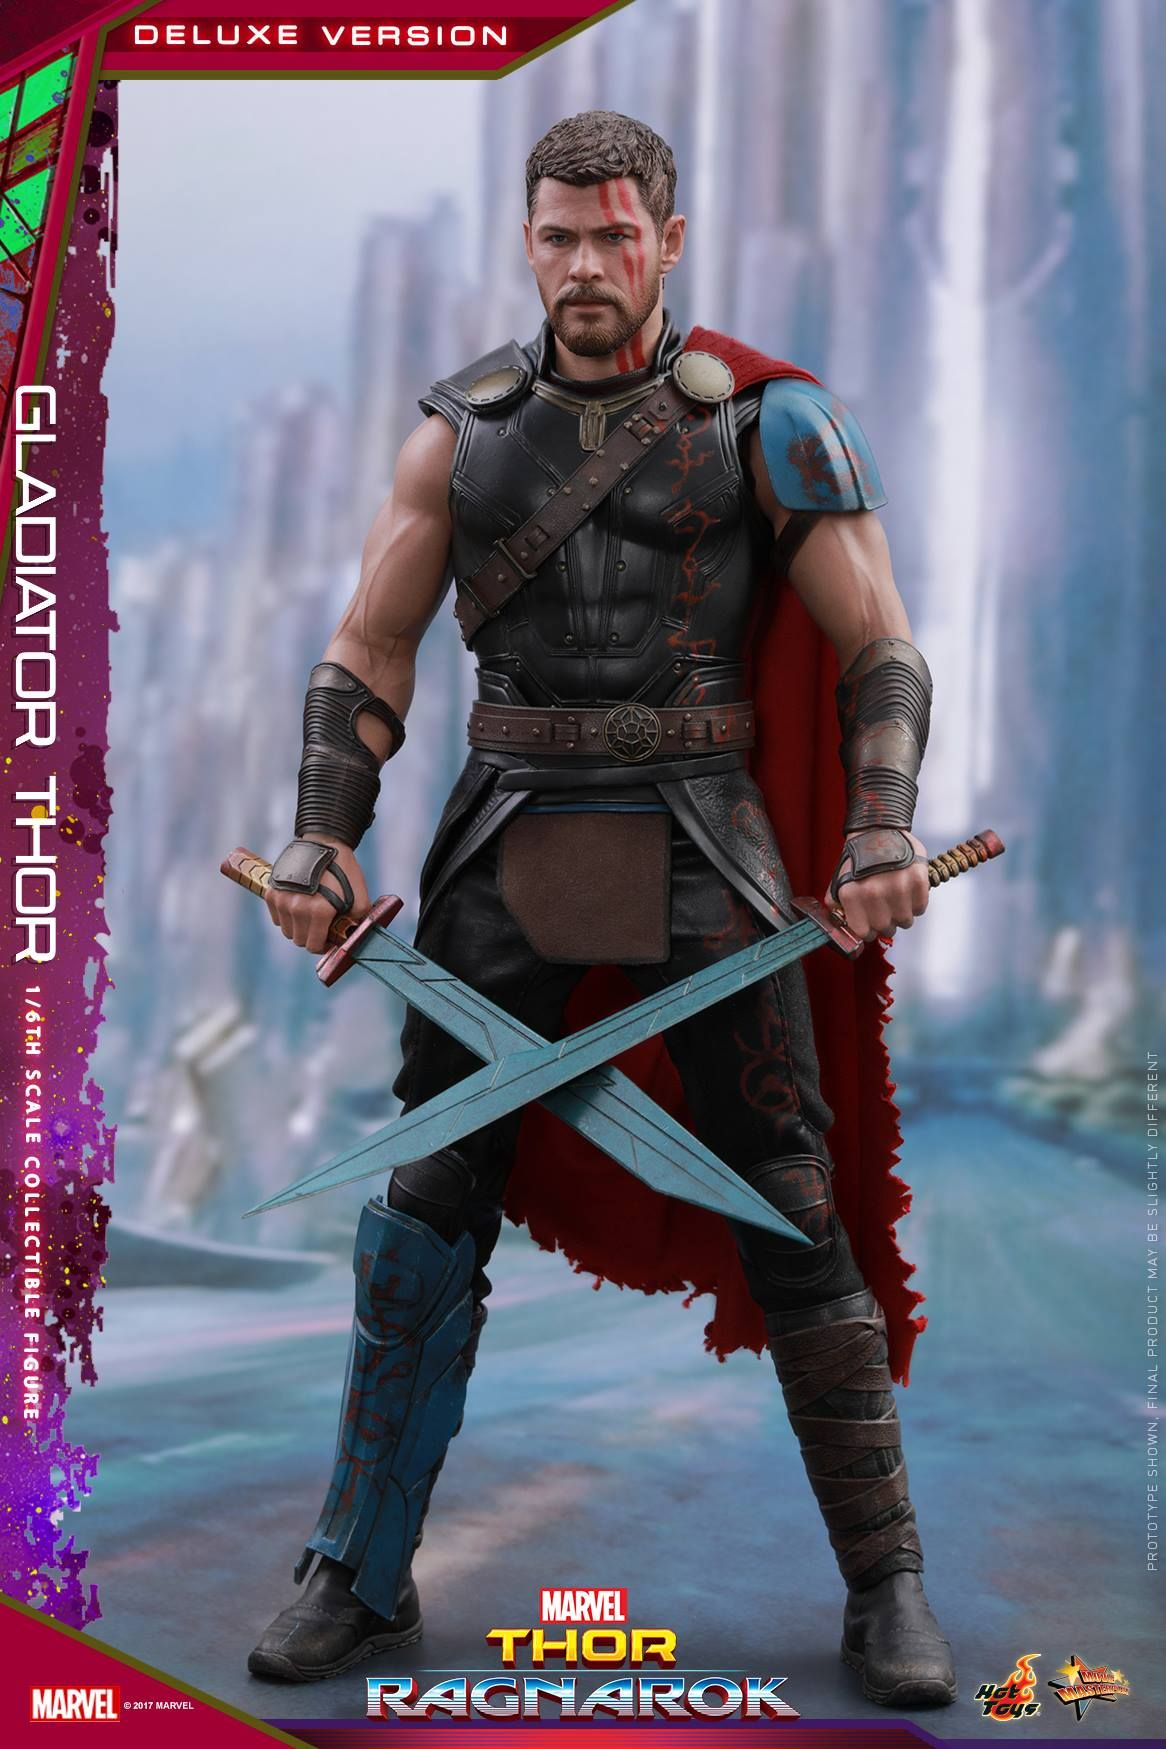 Hot Toys Shows Off Their Gladiator Thor Action Figure From